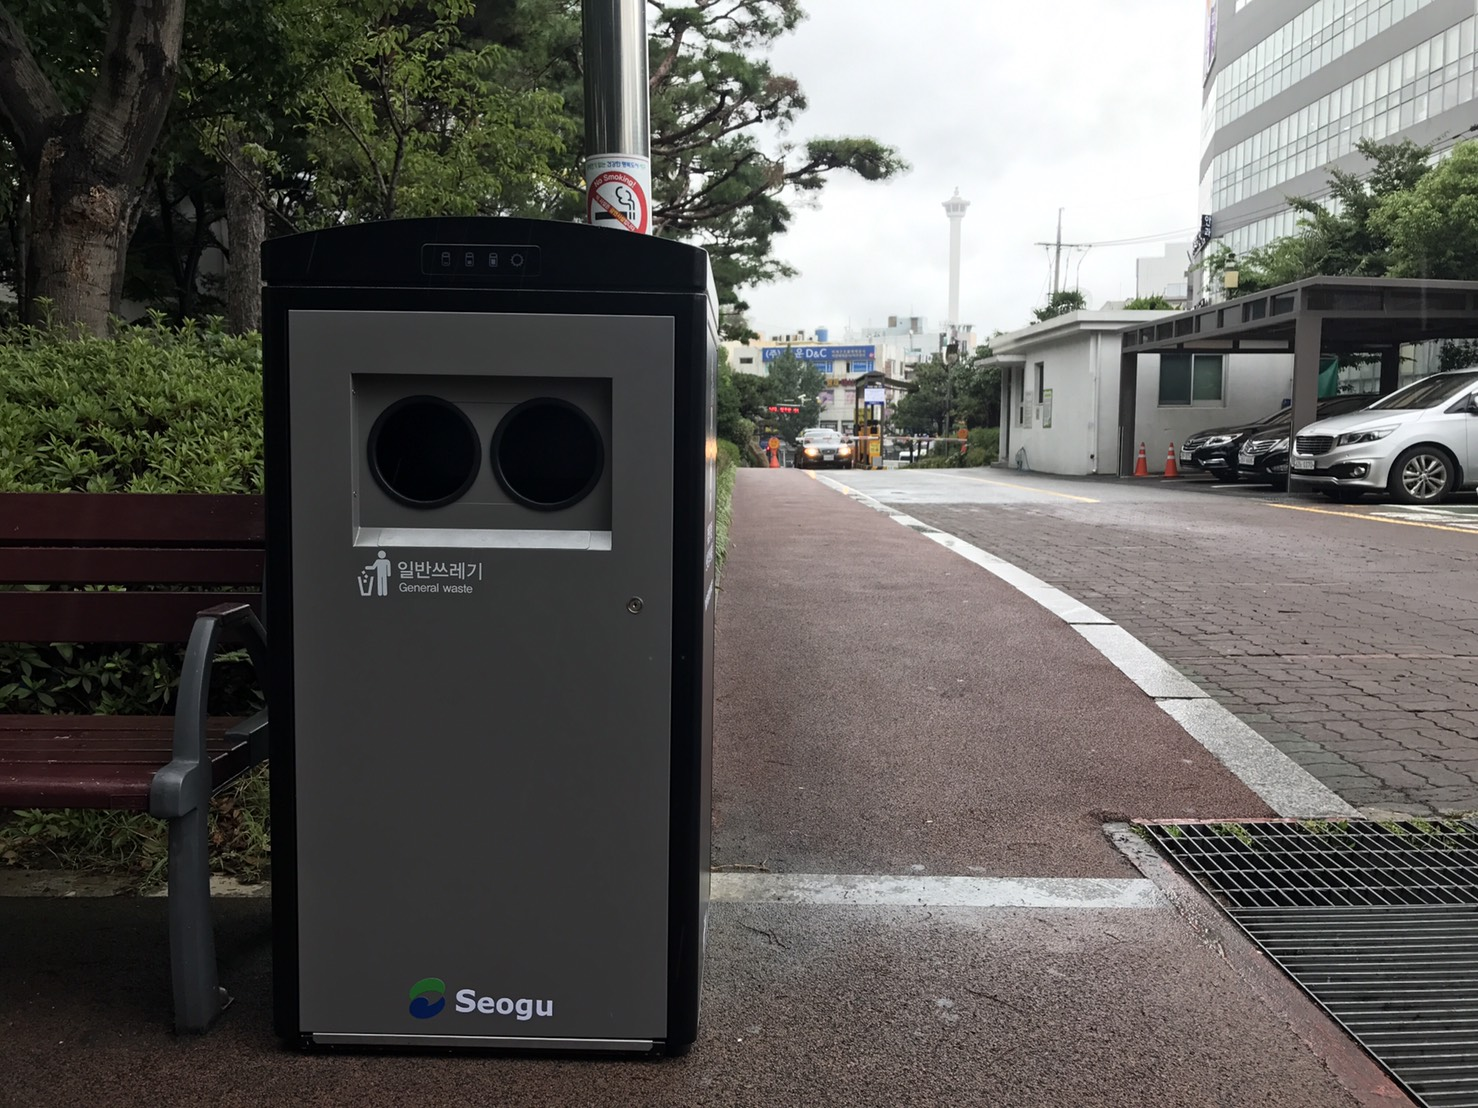 Intelligent waste bin in Busan, South Korea